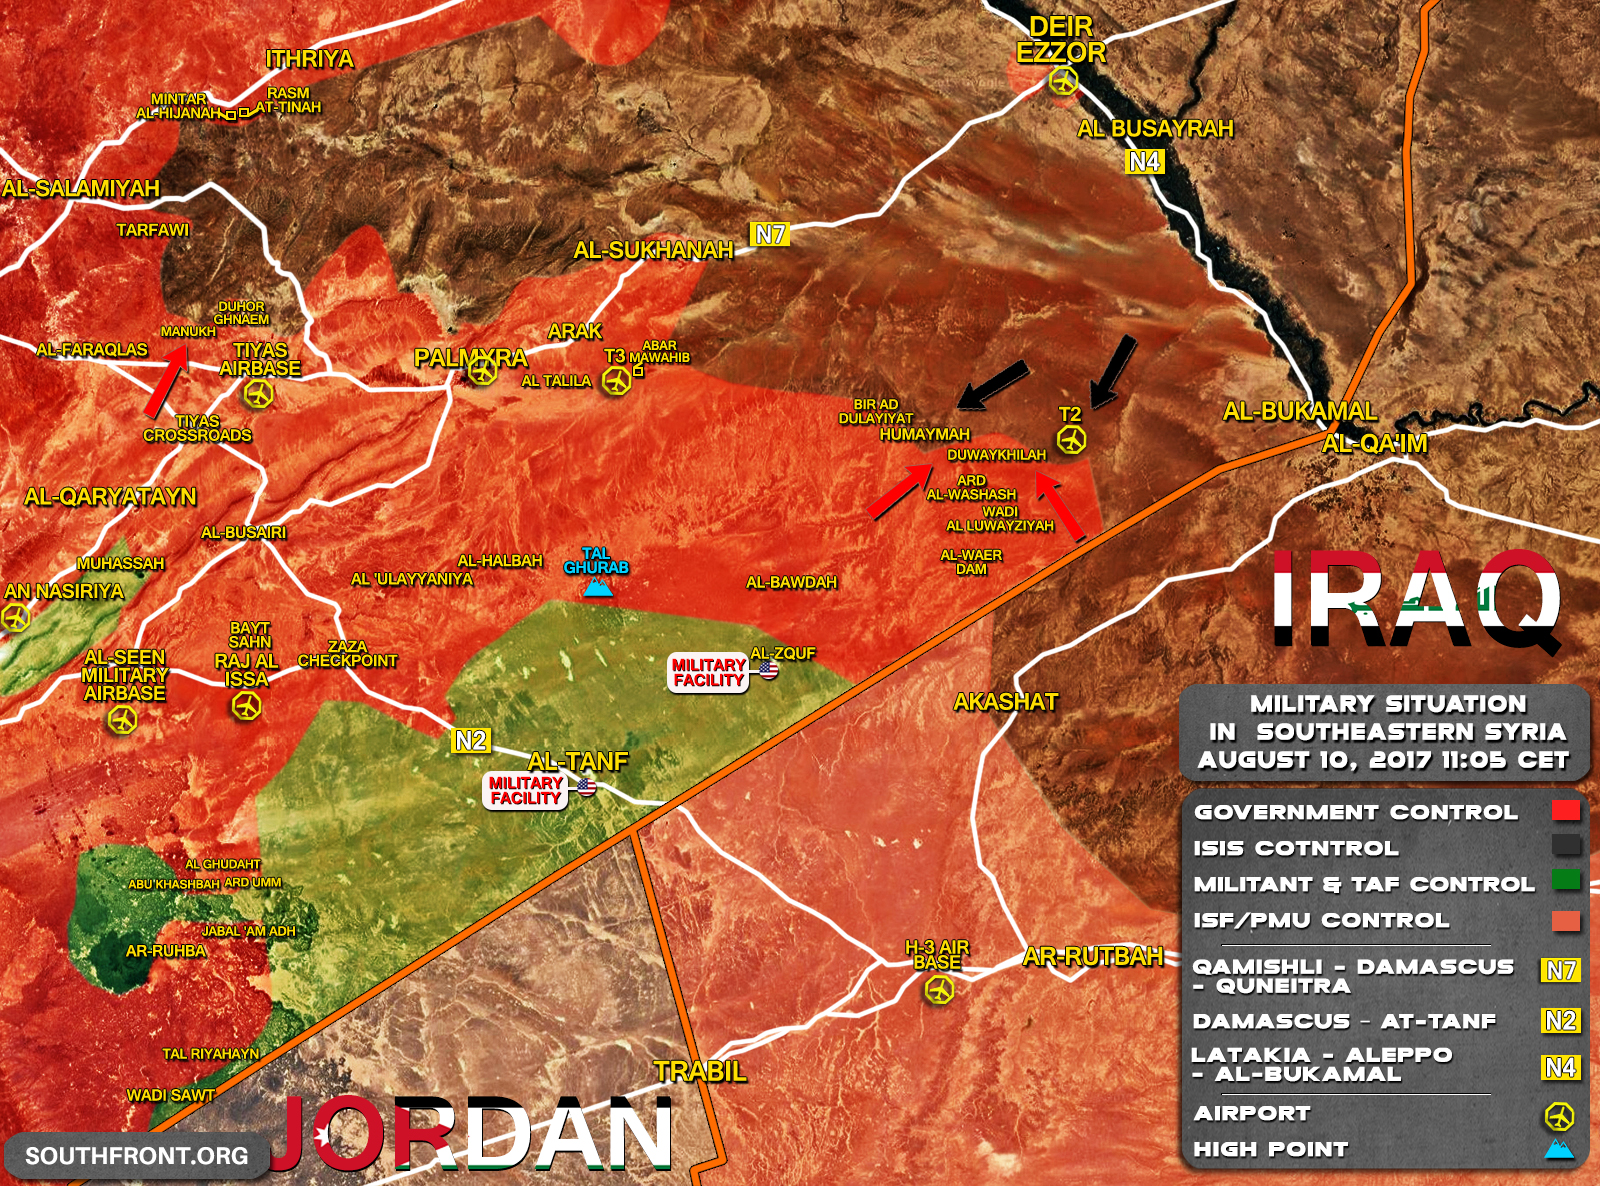 10aug_11_05_Southeastern_Syria_War_Map